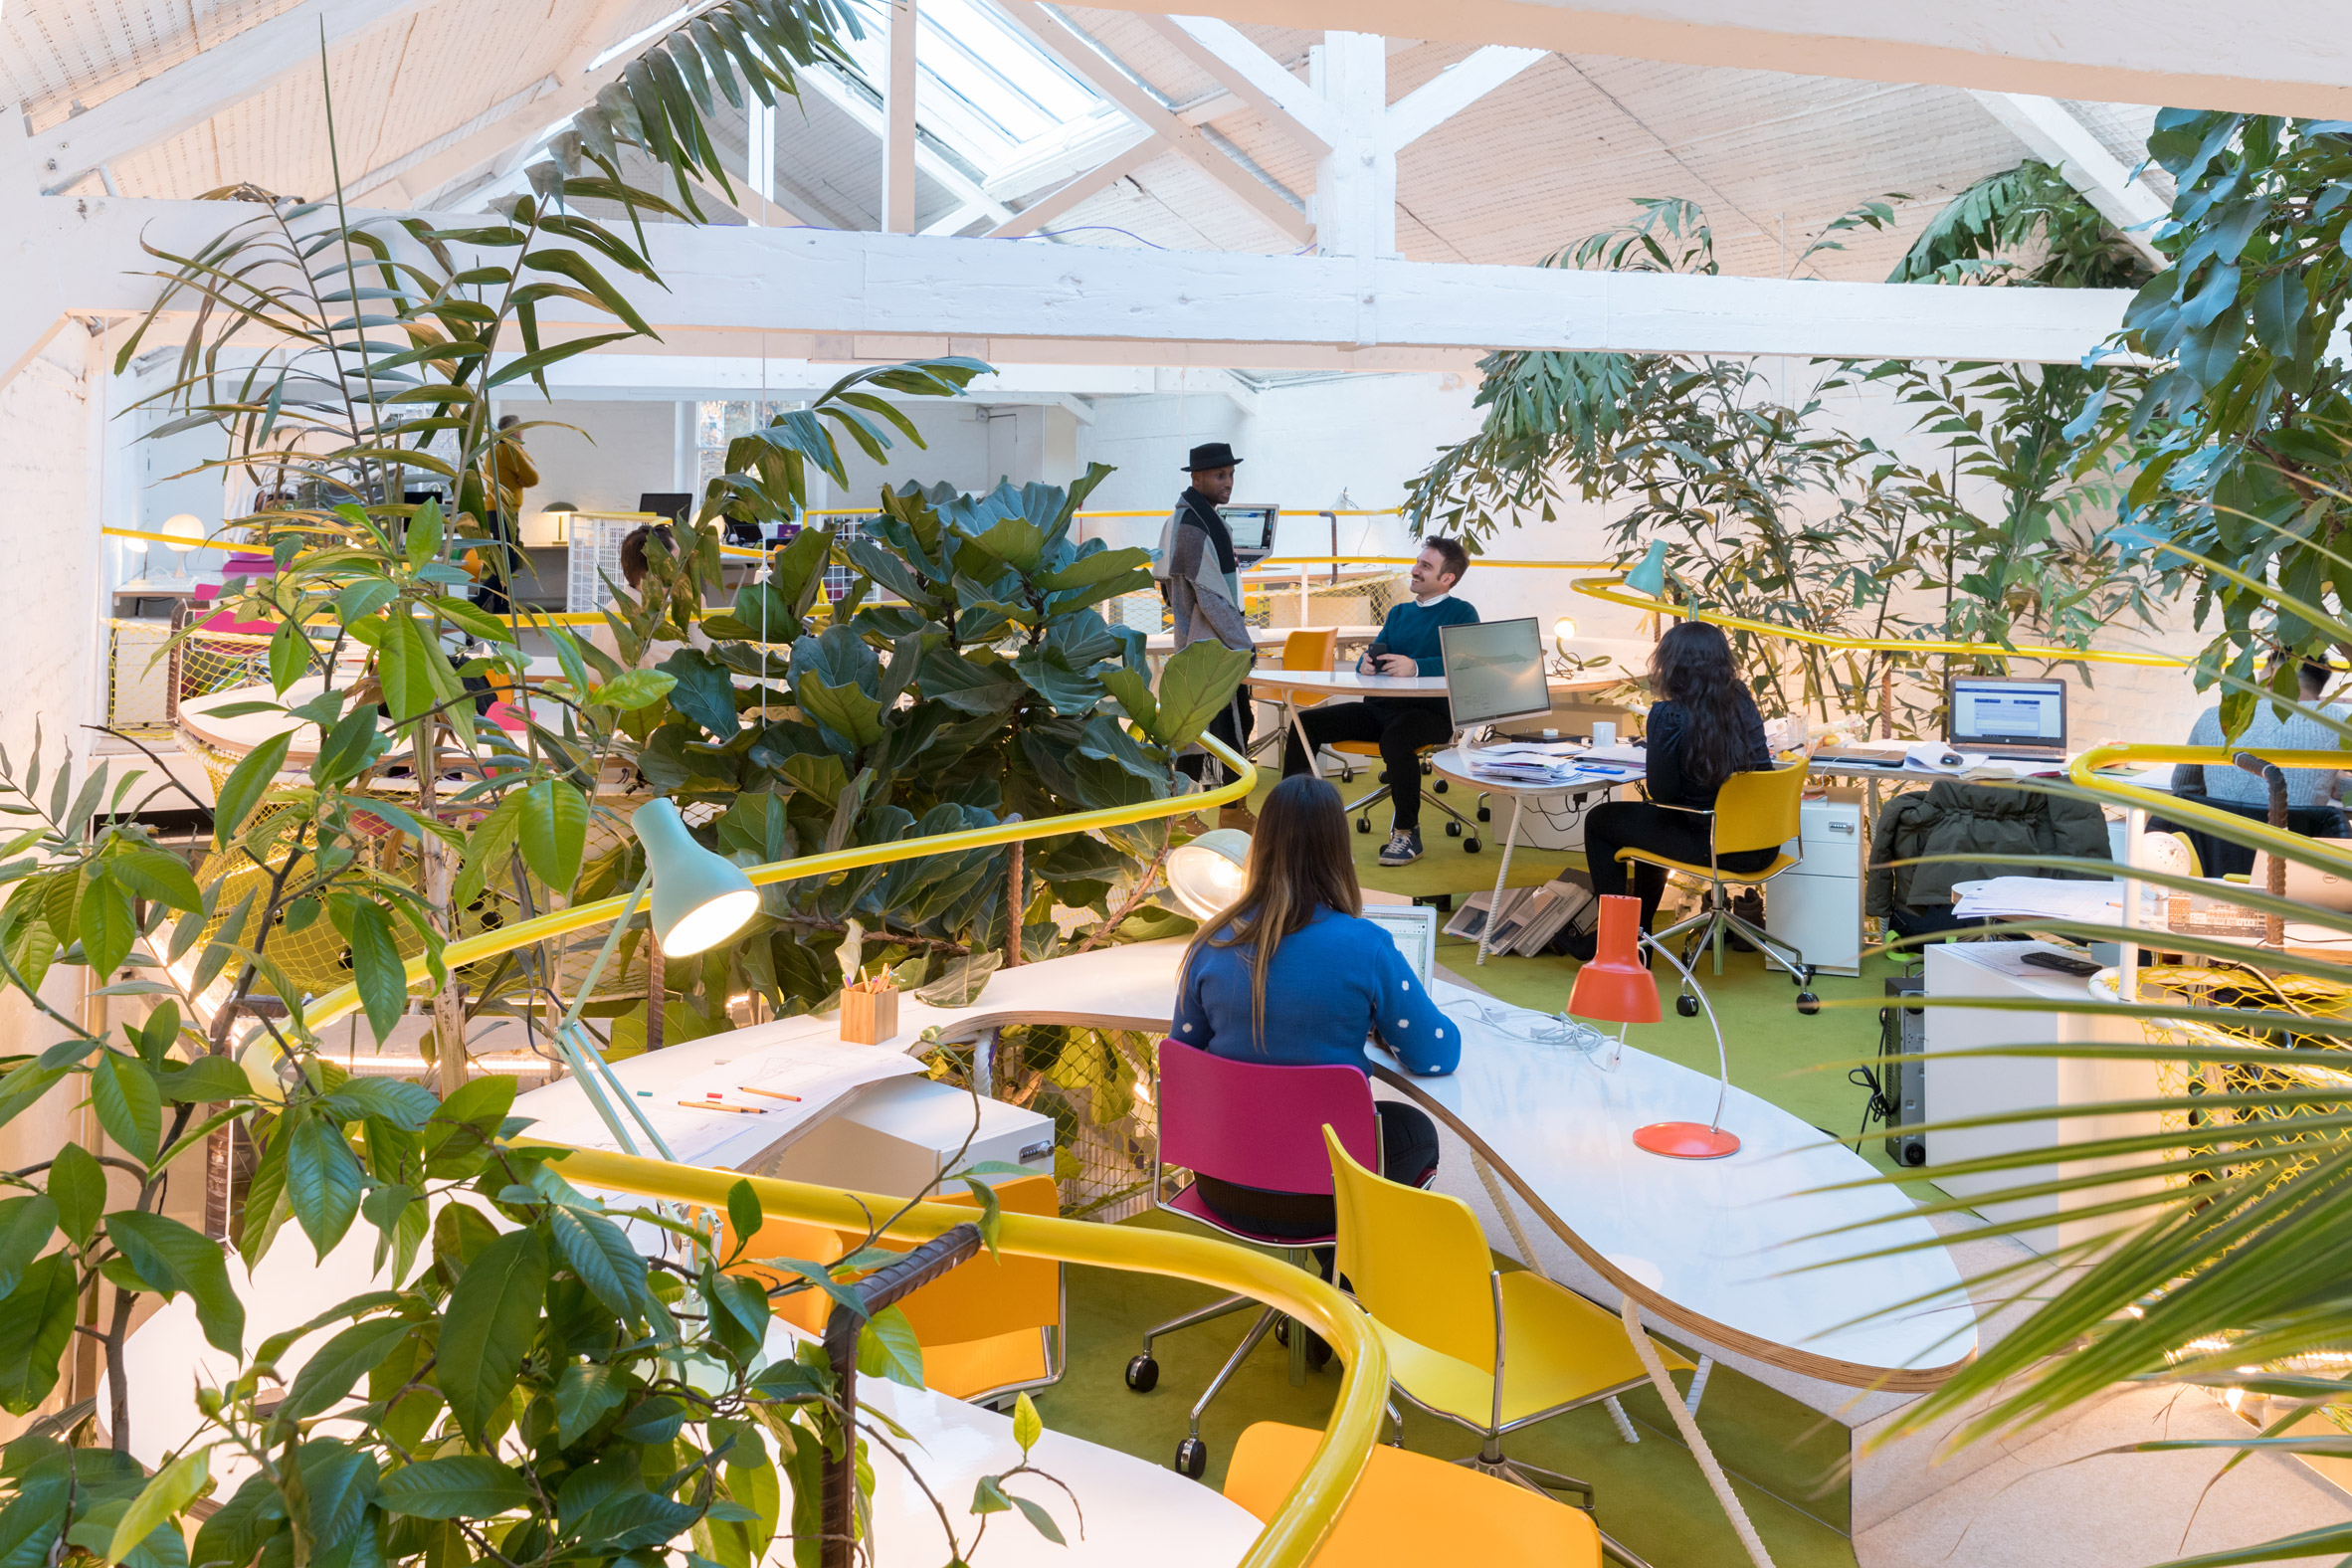 SelgasCano transforms Richard Rogers' former studio into another Second Home workspace